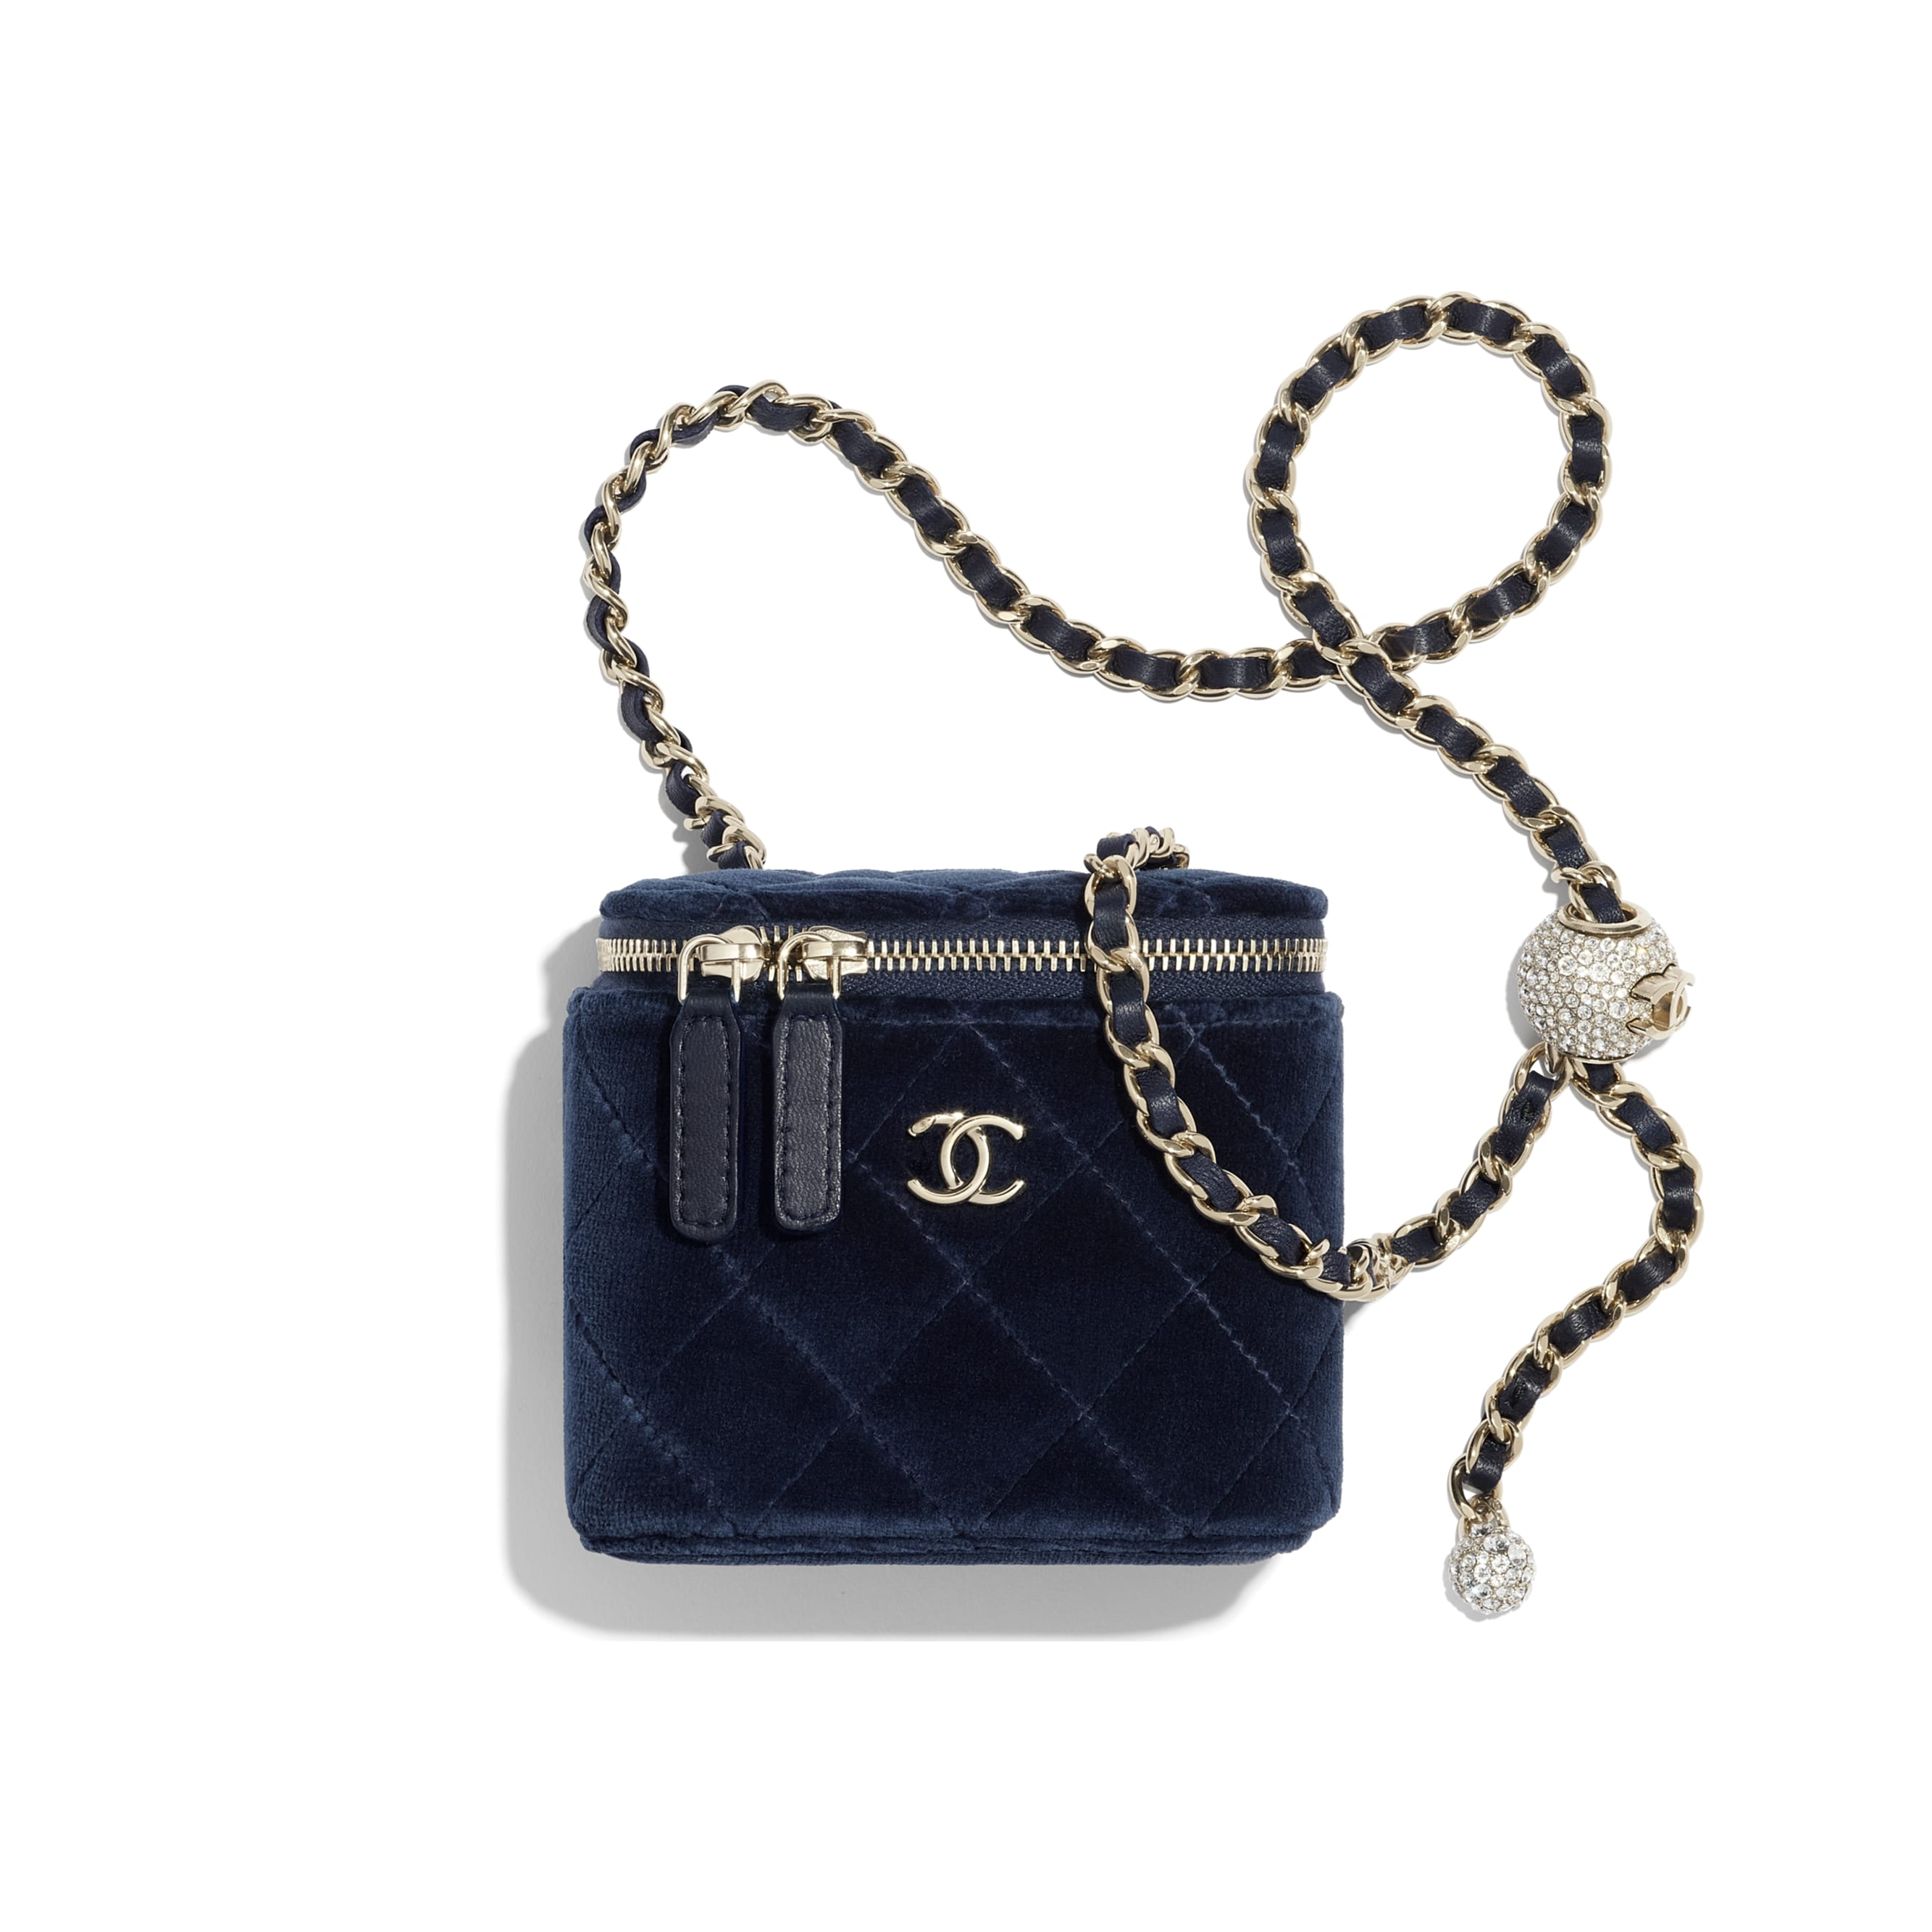 Small Vanity with Chain - Navy Blue - Velvet, Diamanté & Gold-Tone Metal - CHANEL - Default view - see standard sized version